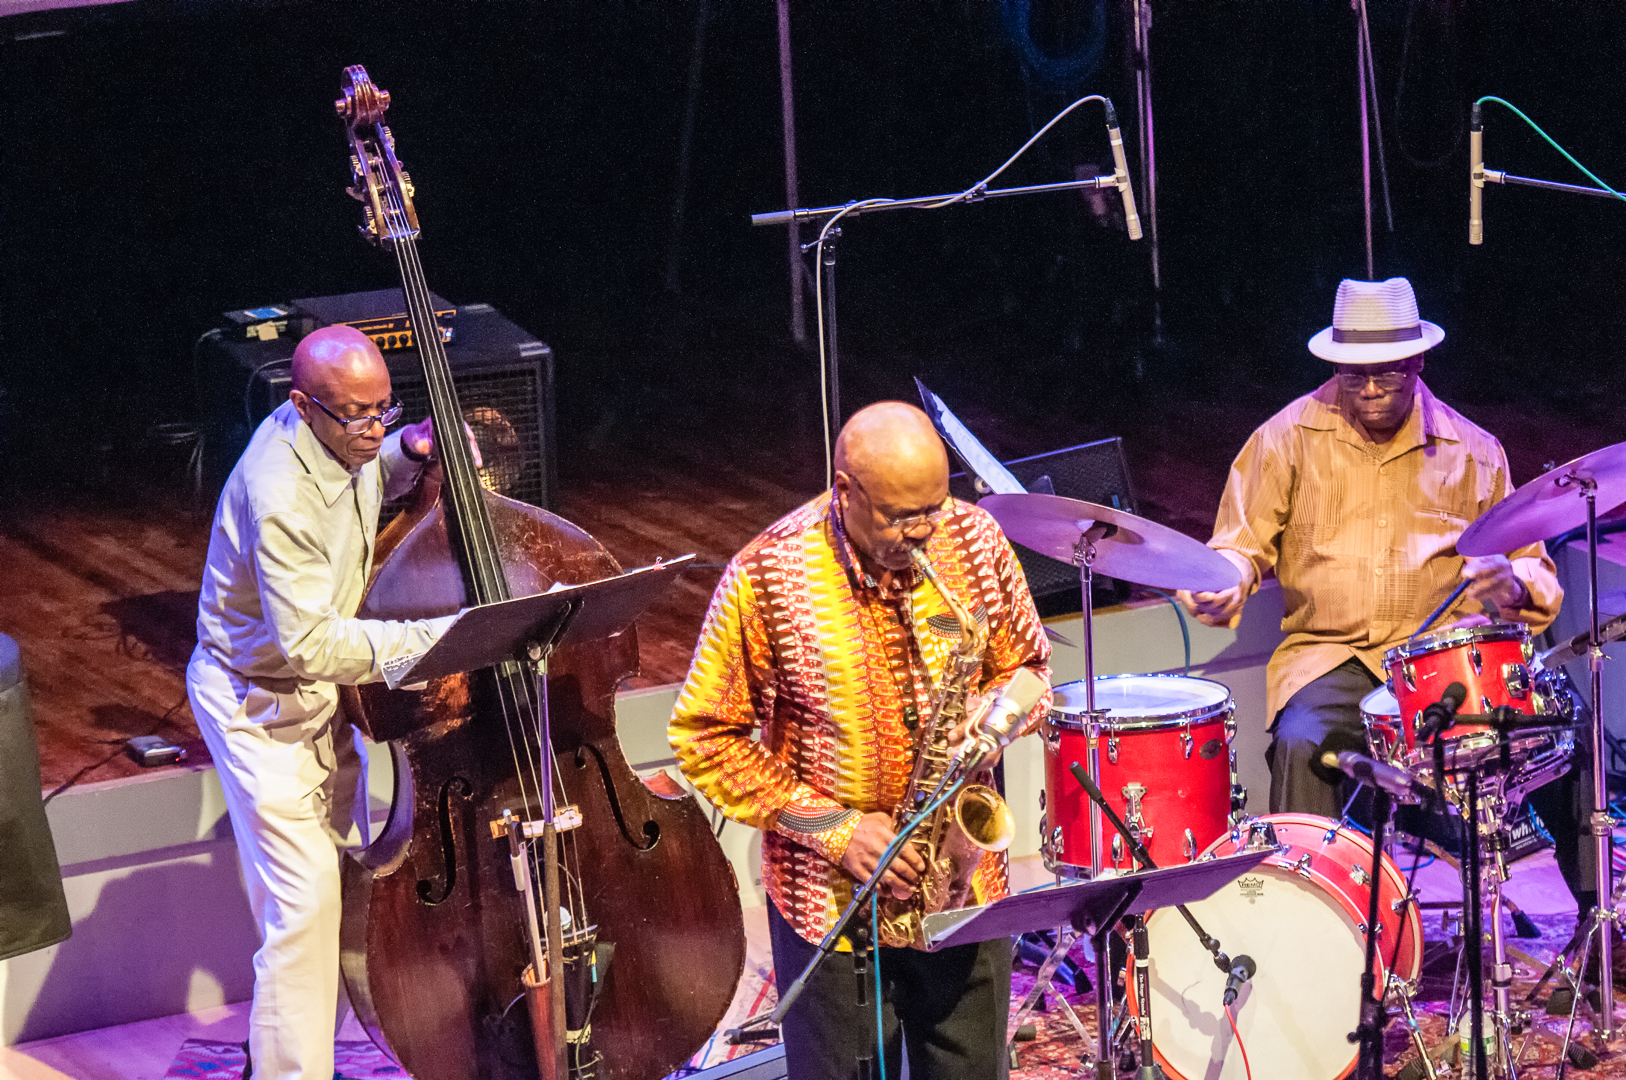 Reggie workman, oliver lake and andrew cyrille with trio 3 at the vision festival 2012